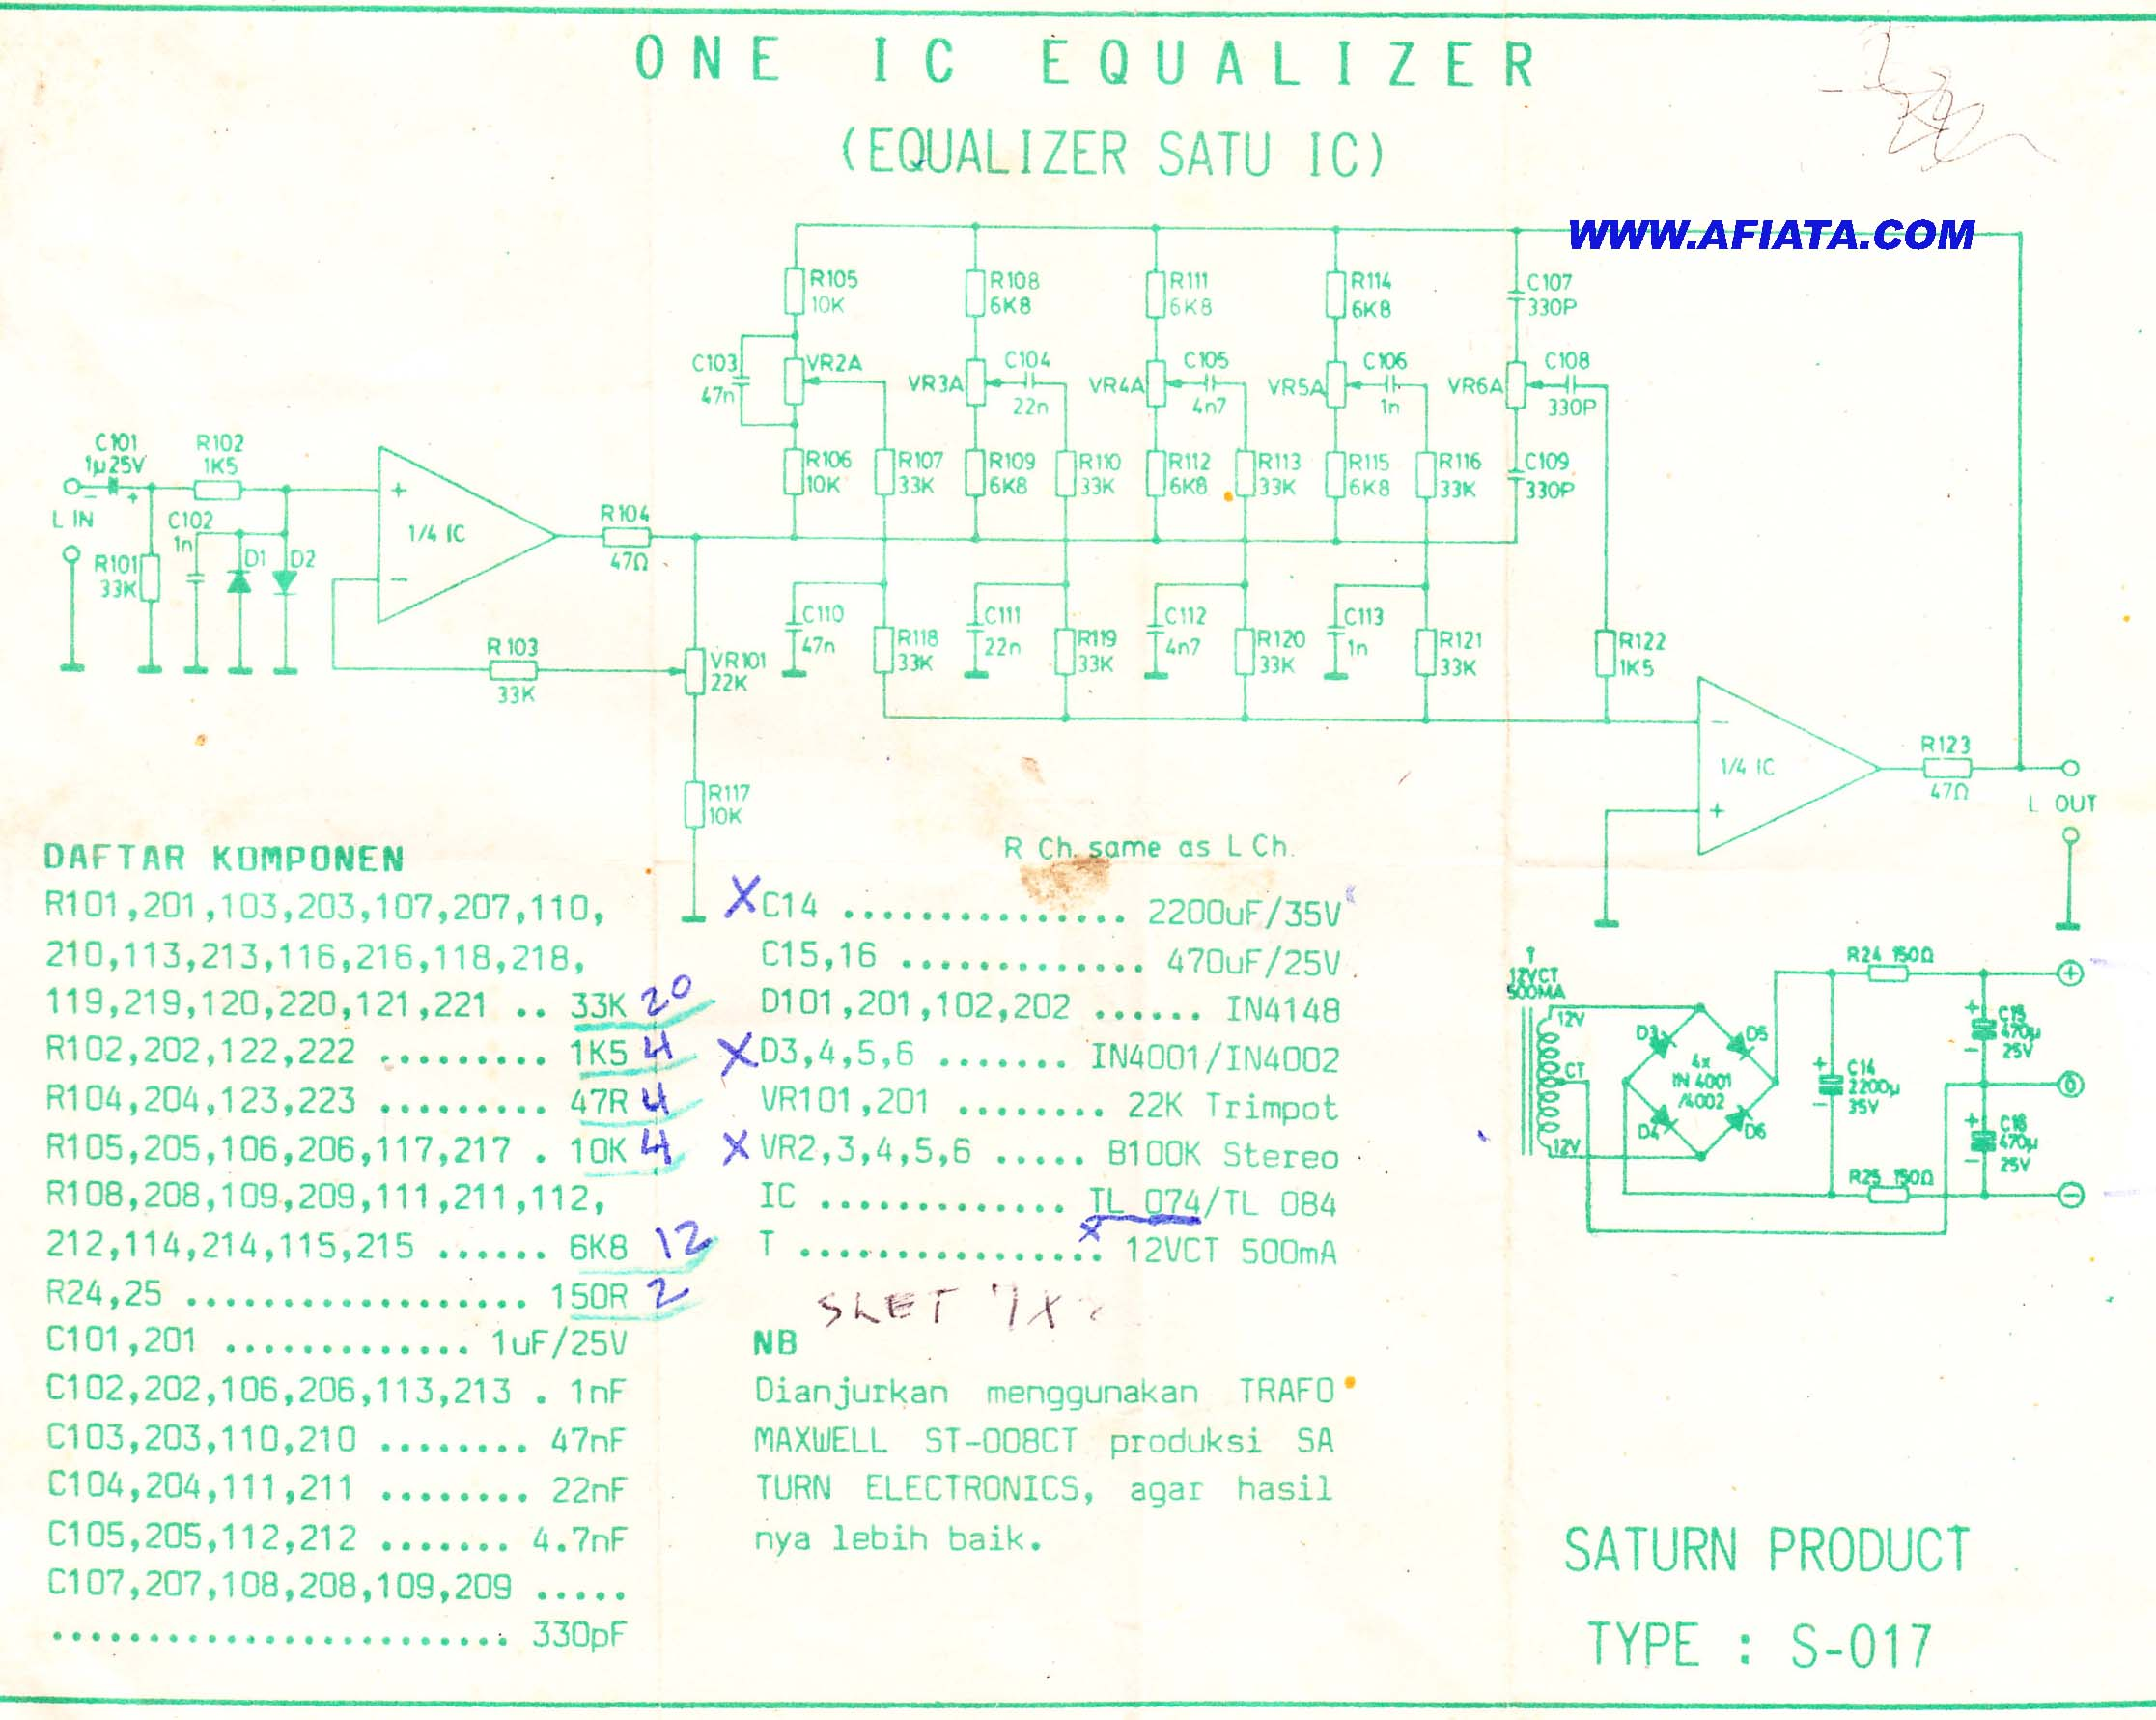 wireless power transmission circuit diagram 69 mustang dash wiring equalizer 5 chanel using ic tl074 tl084 | electronic and layout